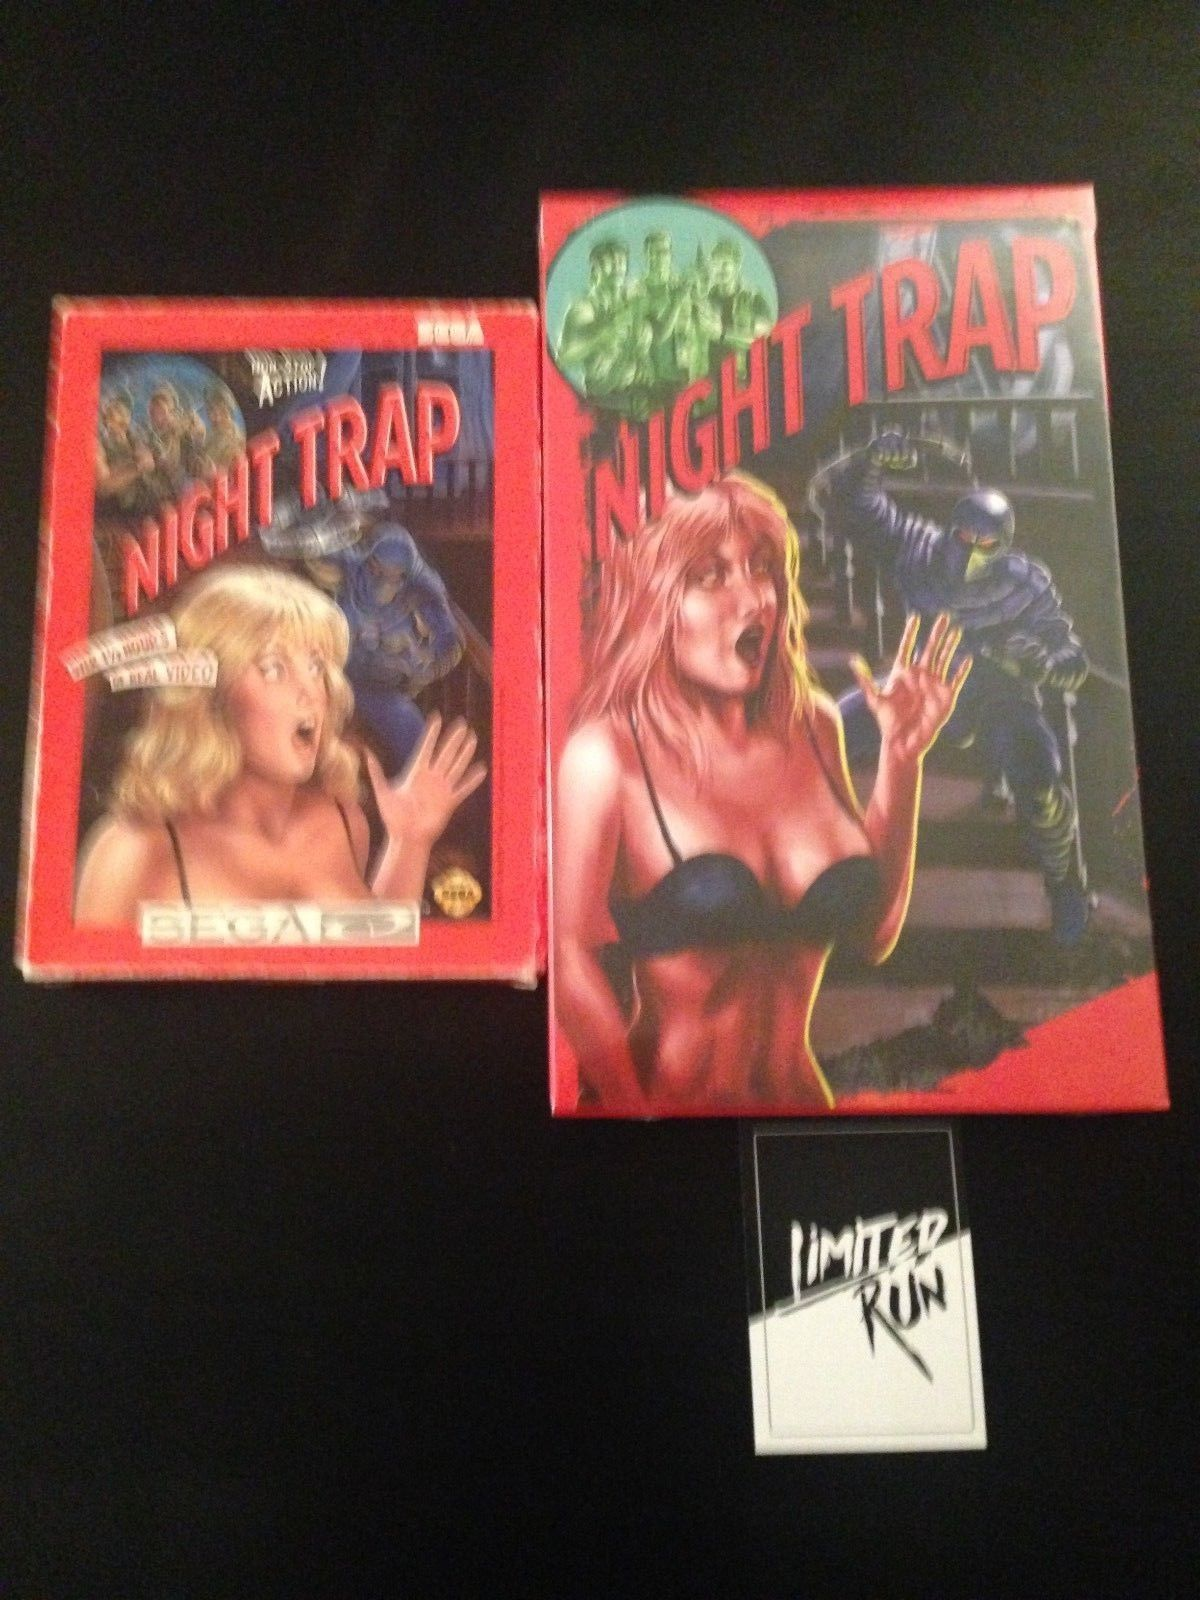 Night Trap Sega CD and Limited Run Games Edition